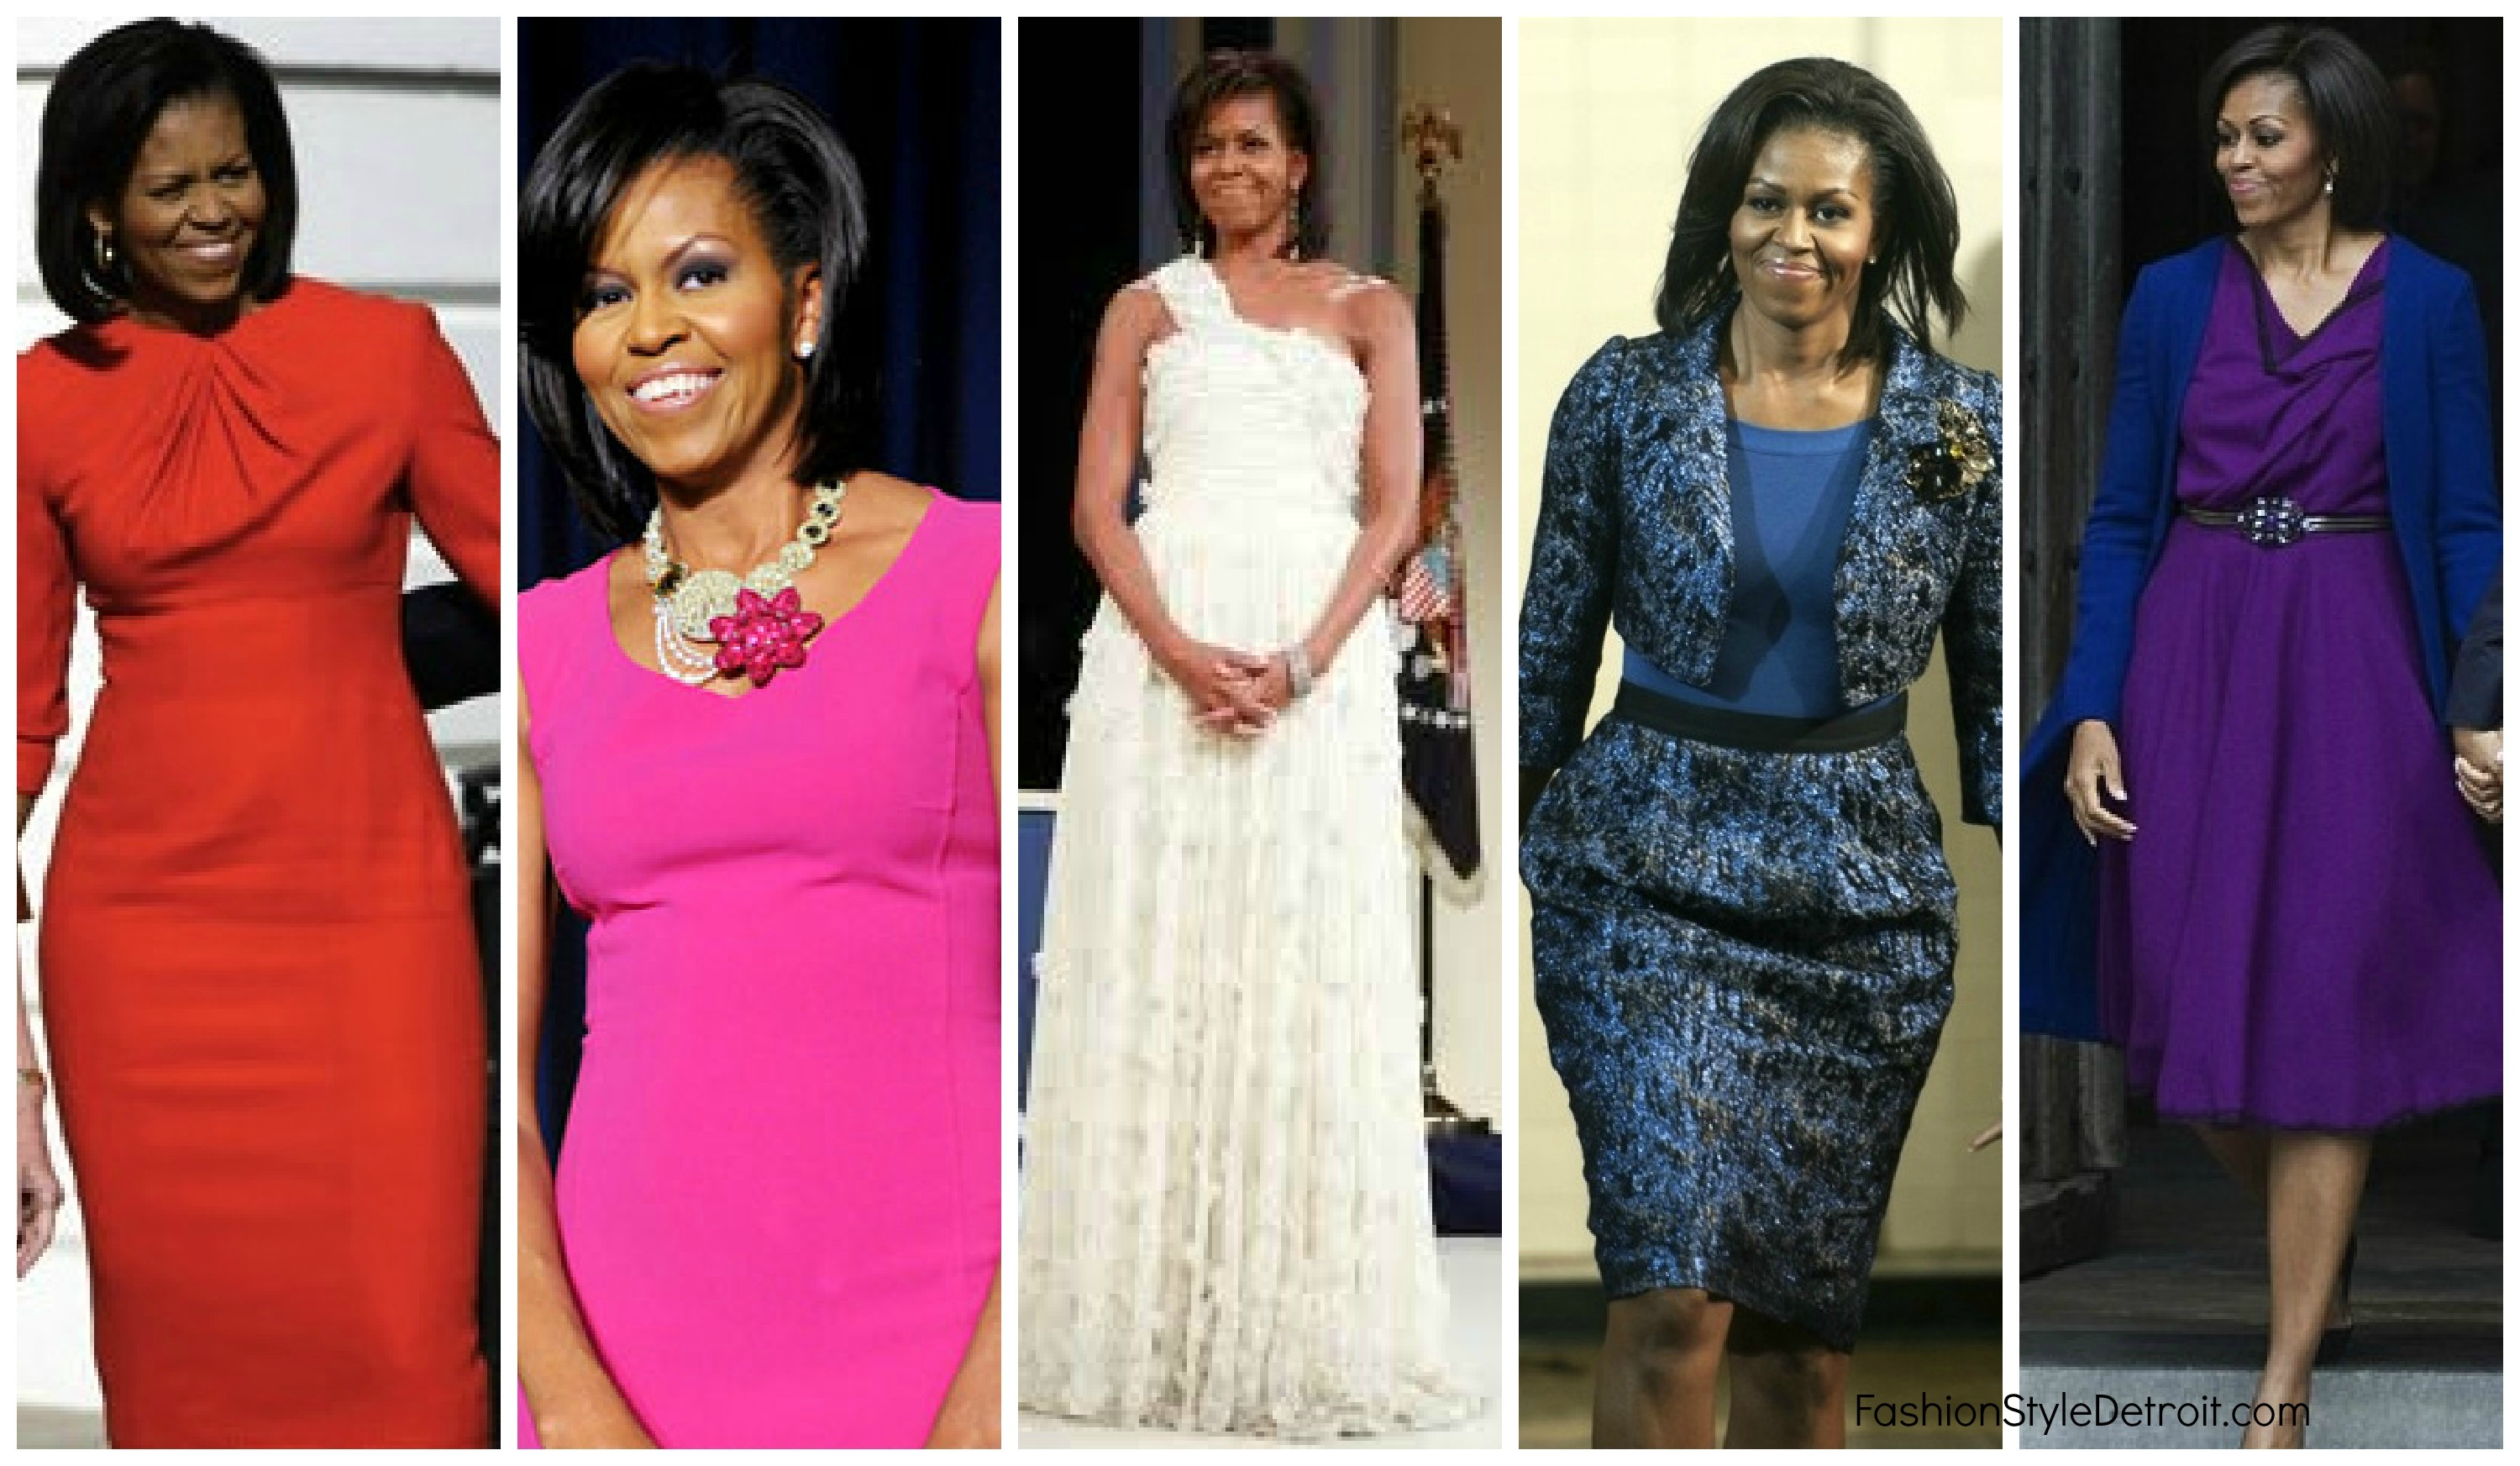 Michelle Obama Fashion 2013 Images Galleries With A Bite